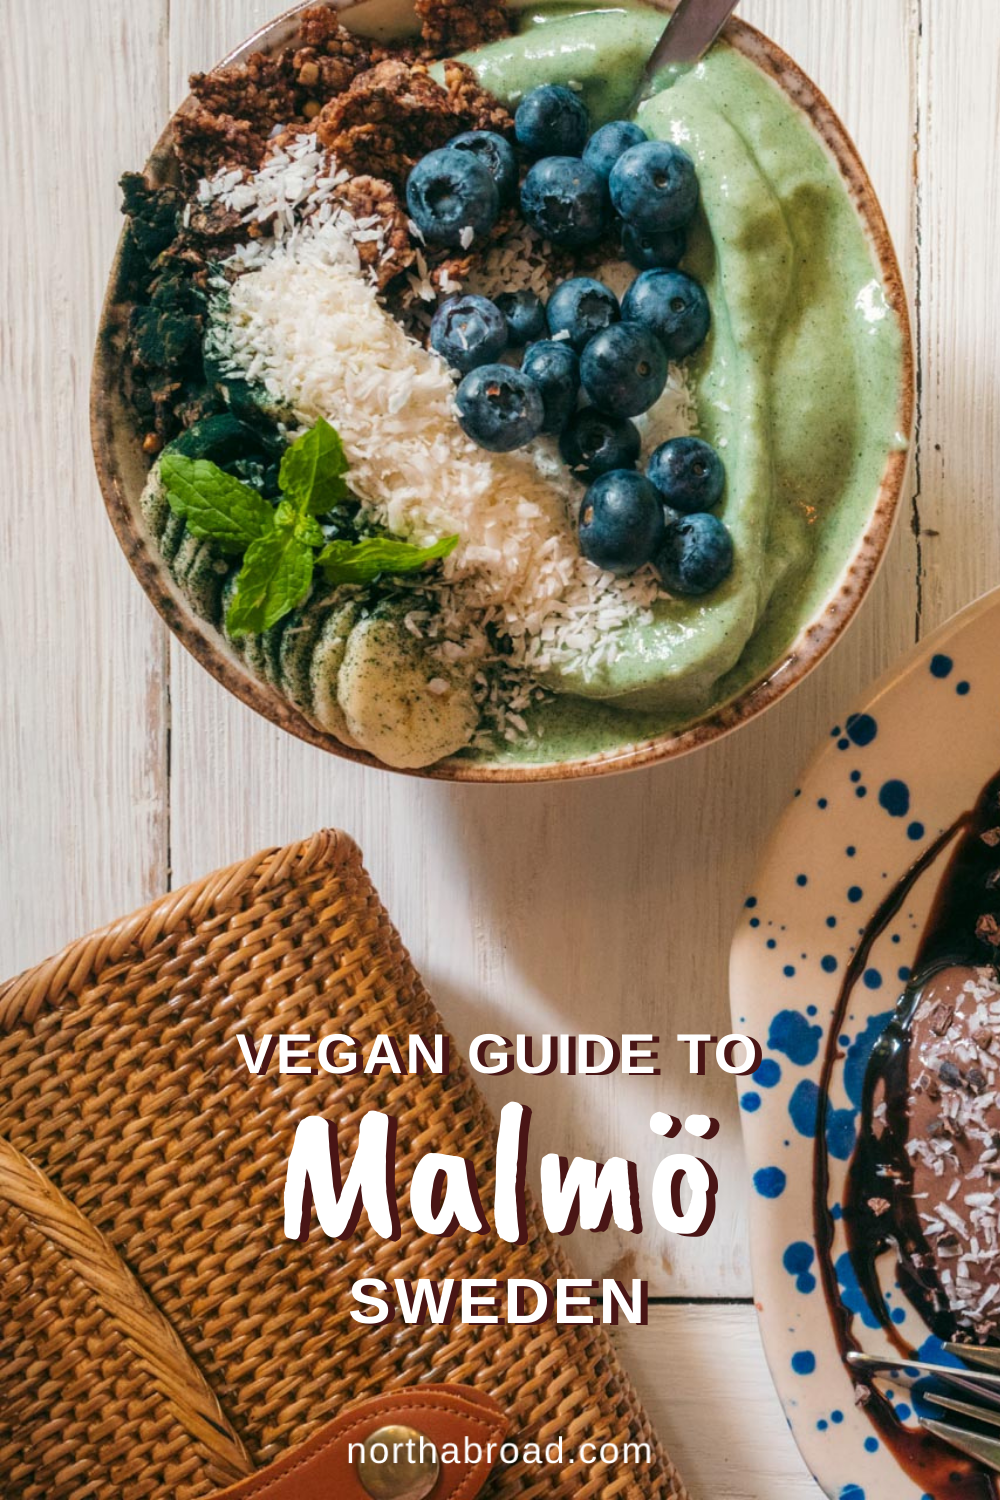 Everything you need to know about finding the most delicious vegan and vegetarian places in Malmö, Sweden